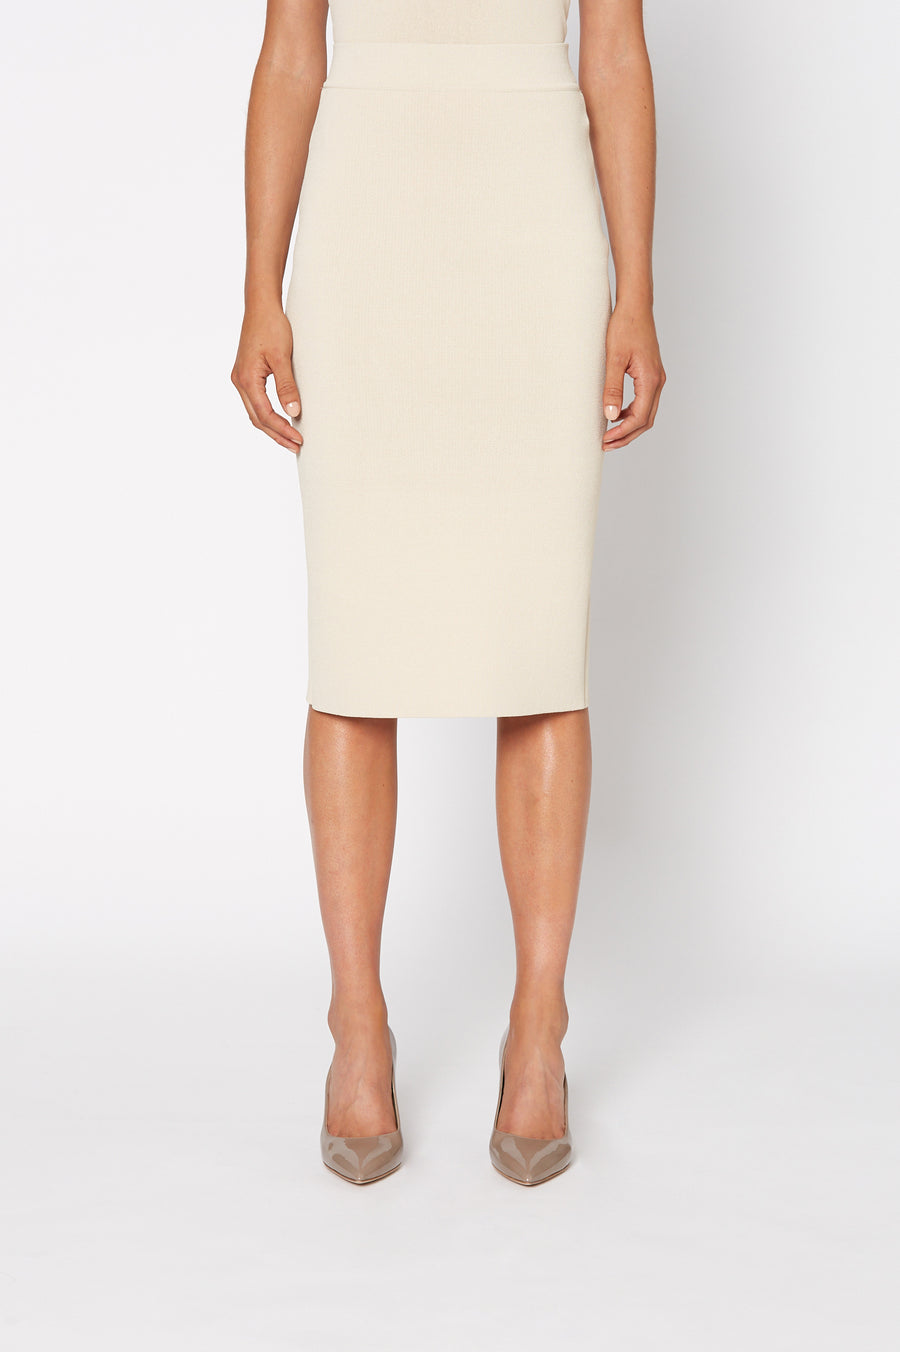 Crepe Knit Slit Back Skirt, Tailored Form Fitting Pencil Skirt. Center Back Split. Color Papiro